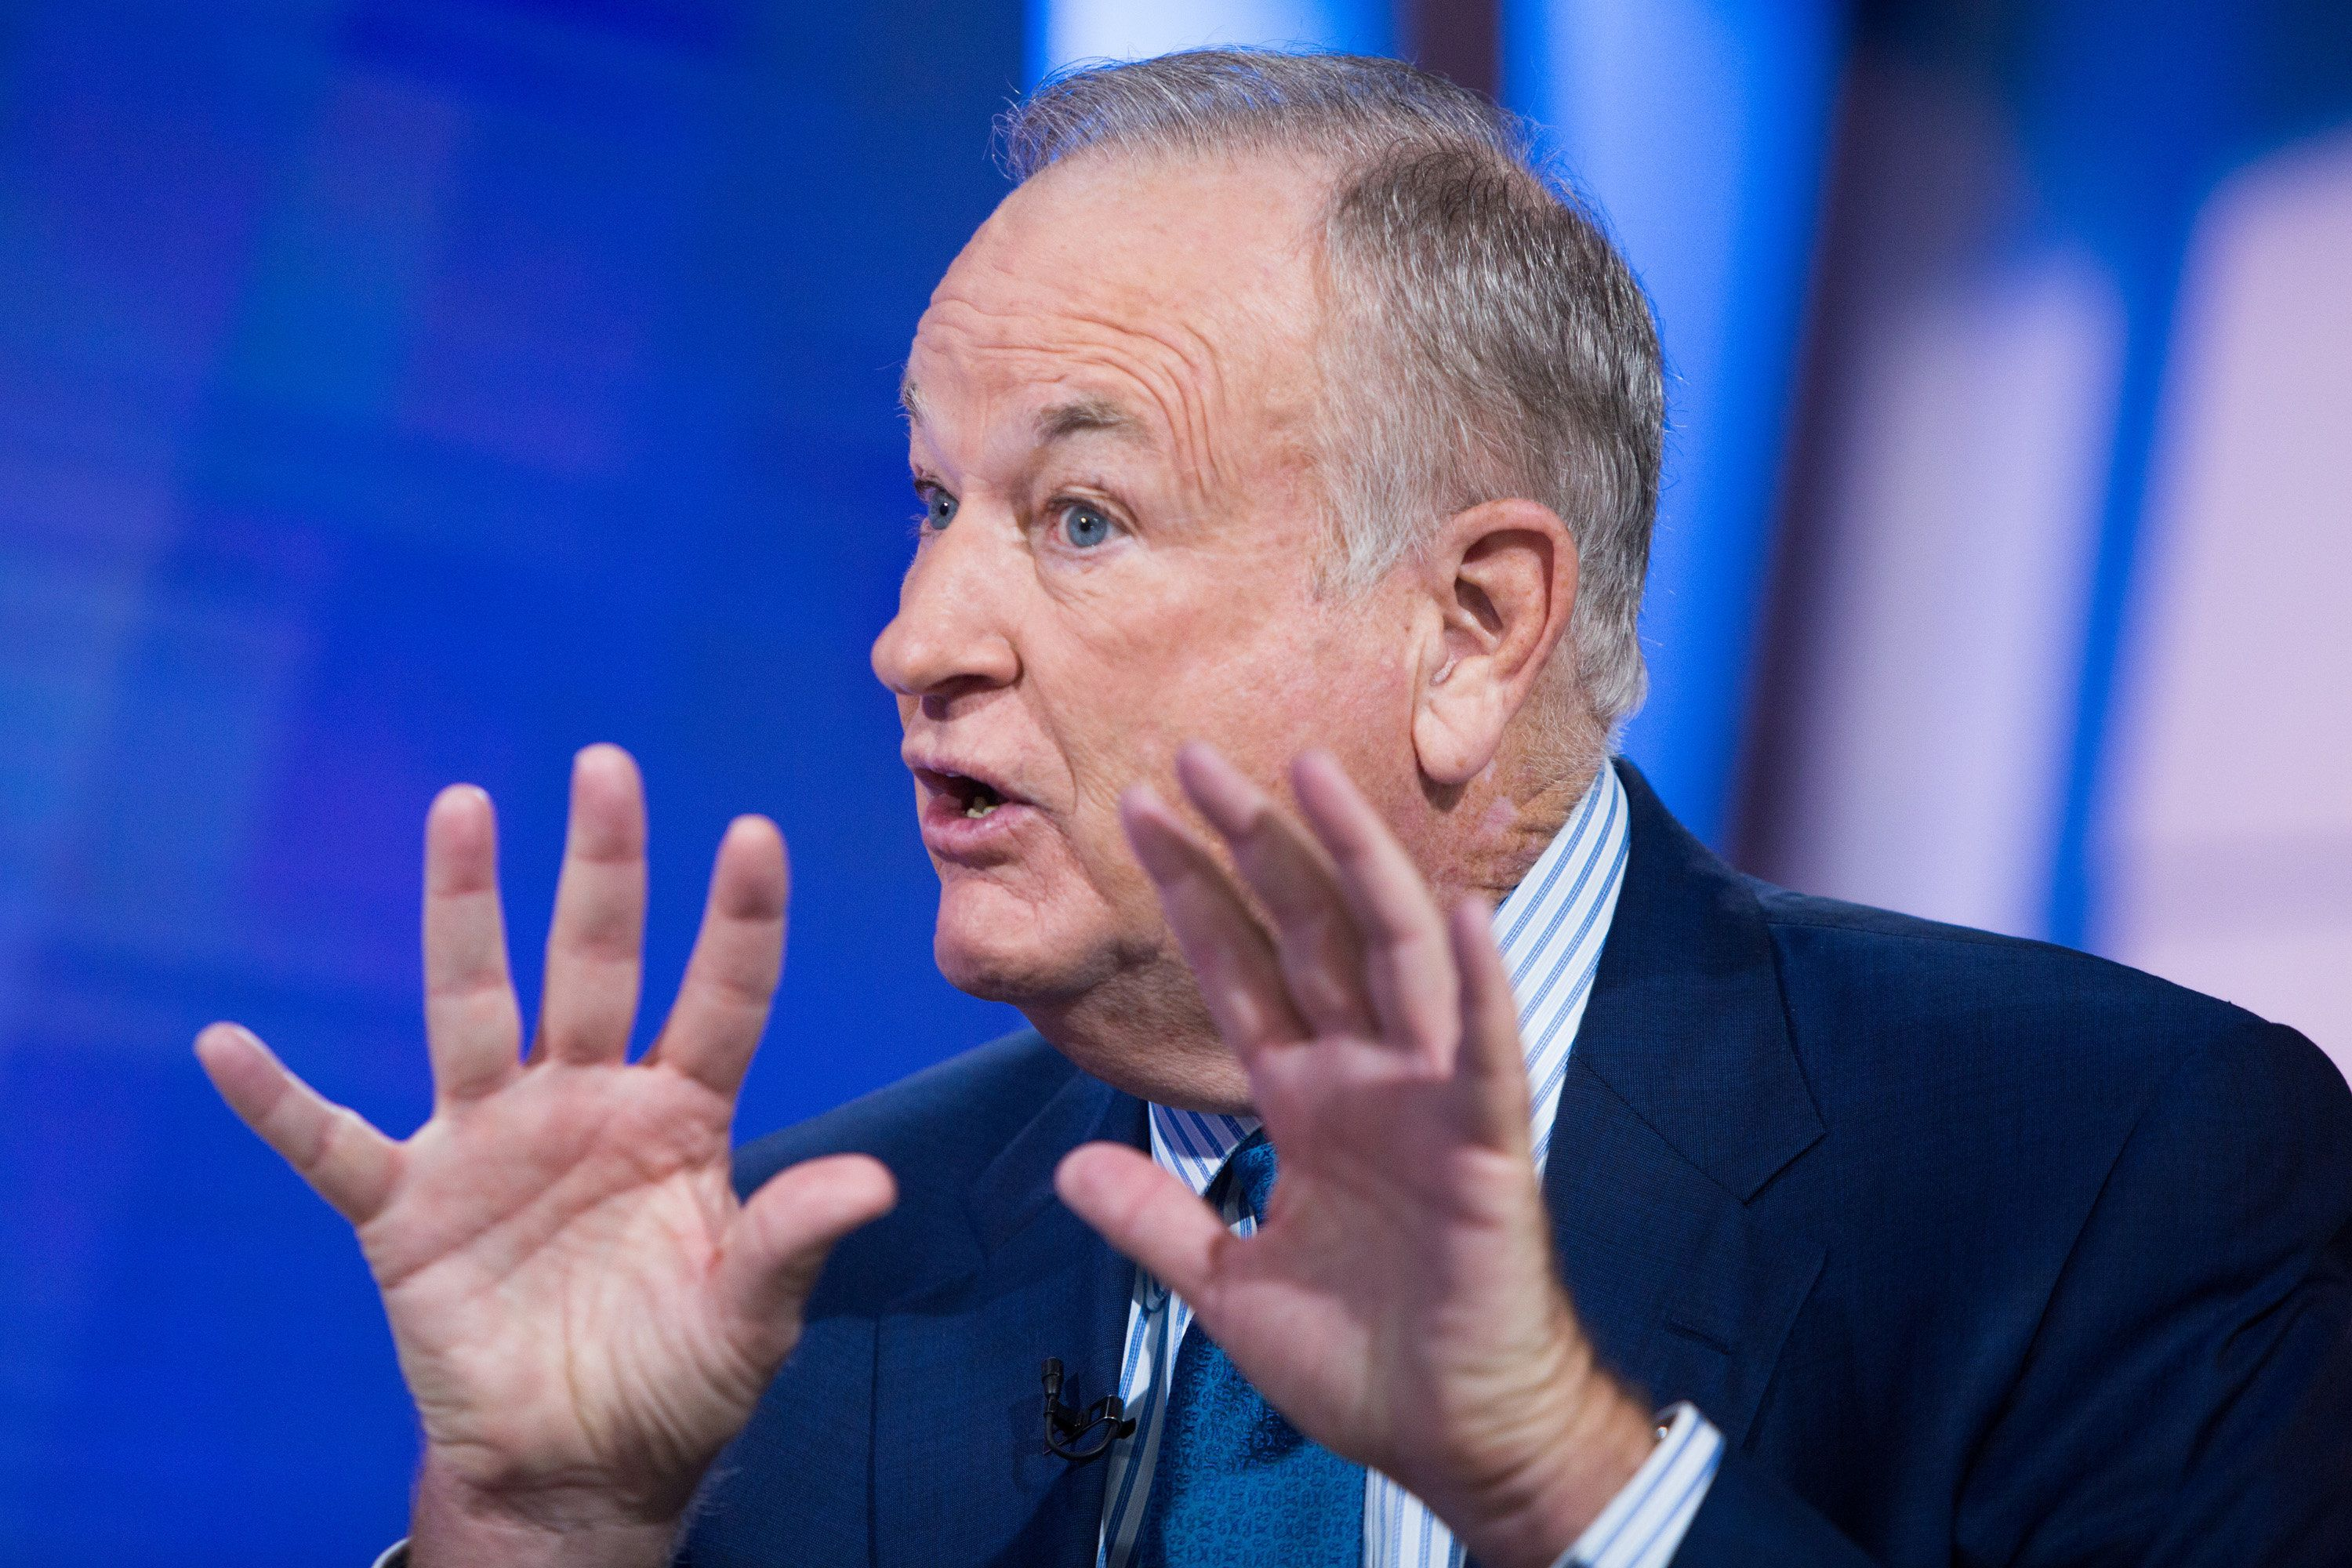 TODAY -- Pictured: Bill O'Reilly on Tuesday, September 19, 2017 -- (Photo by: Nathan Congleton/NBC/NBCU Photo Bank via Getty Images)